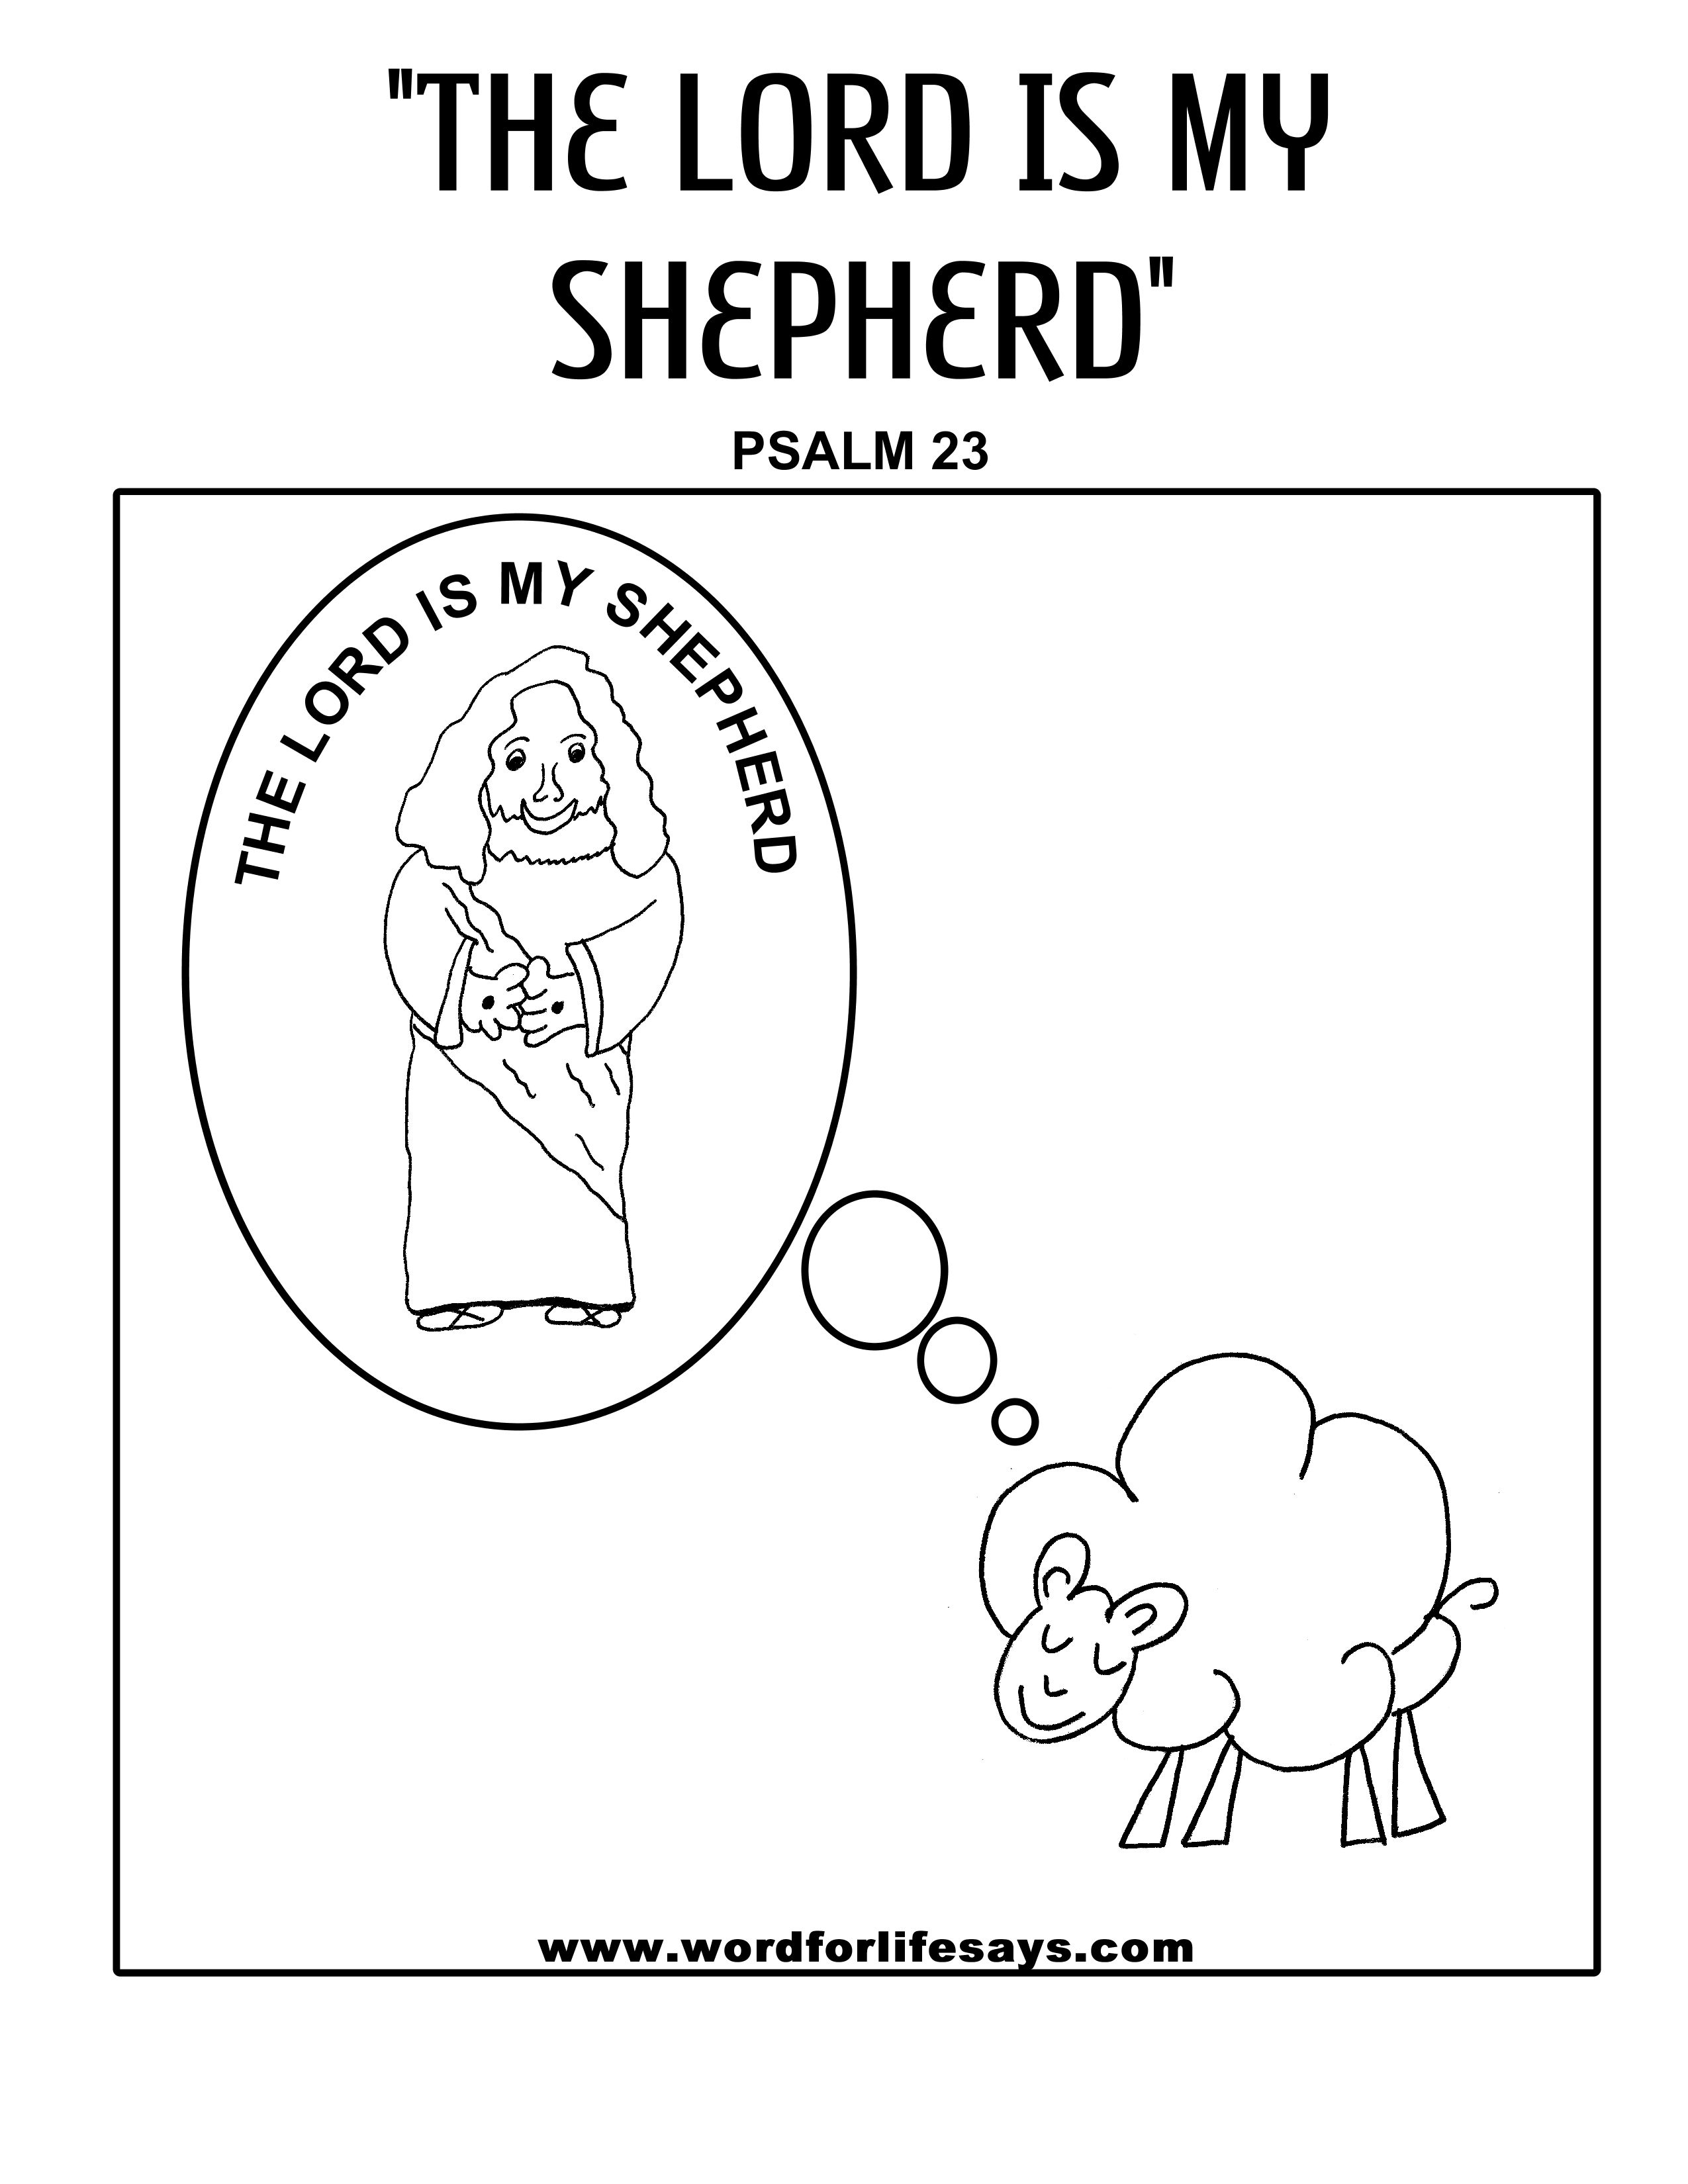 Psalm 23 Lamb coloring page | Sunday school coloring pages, Bible ... | 3300x2550